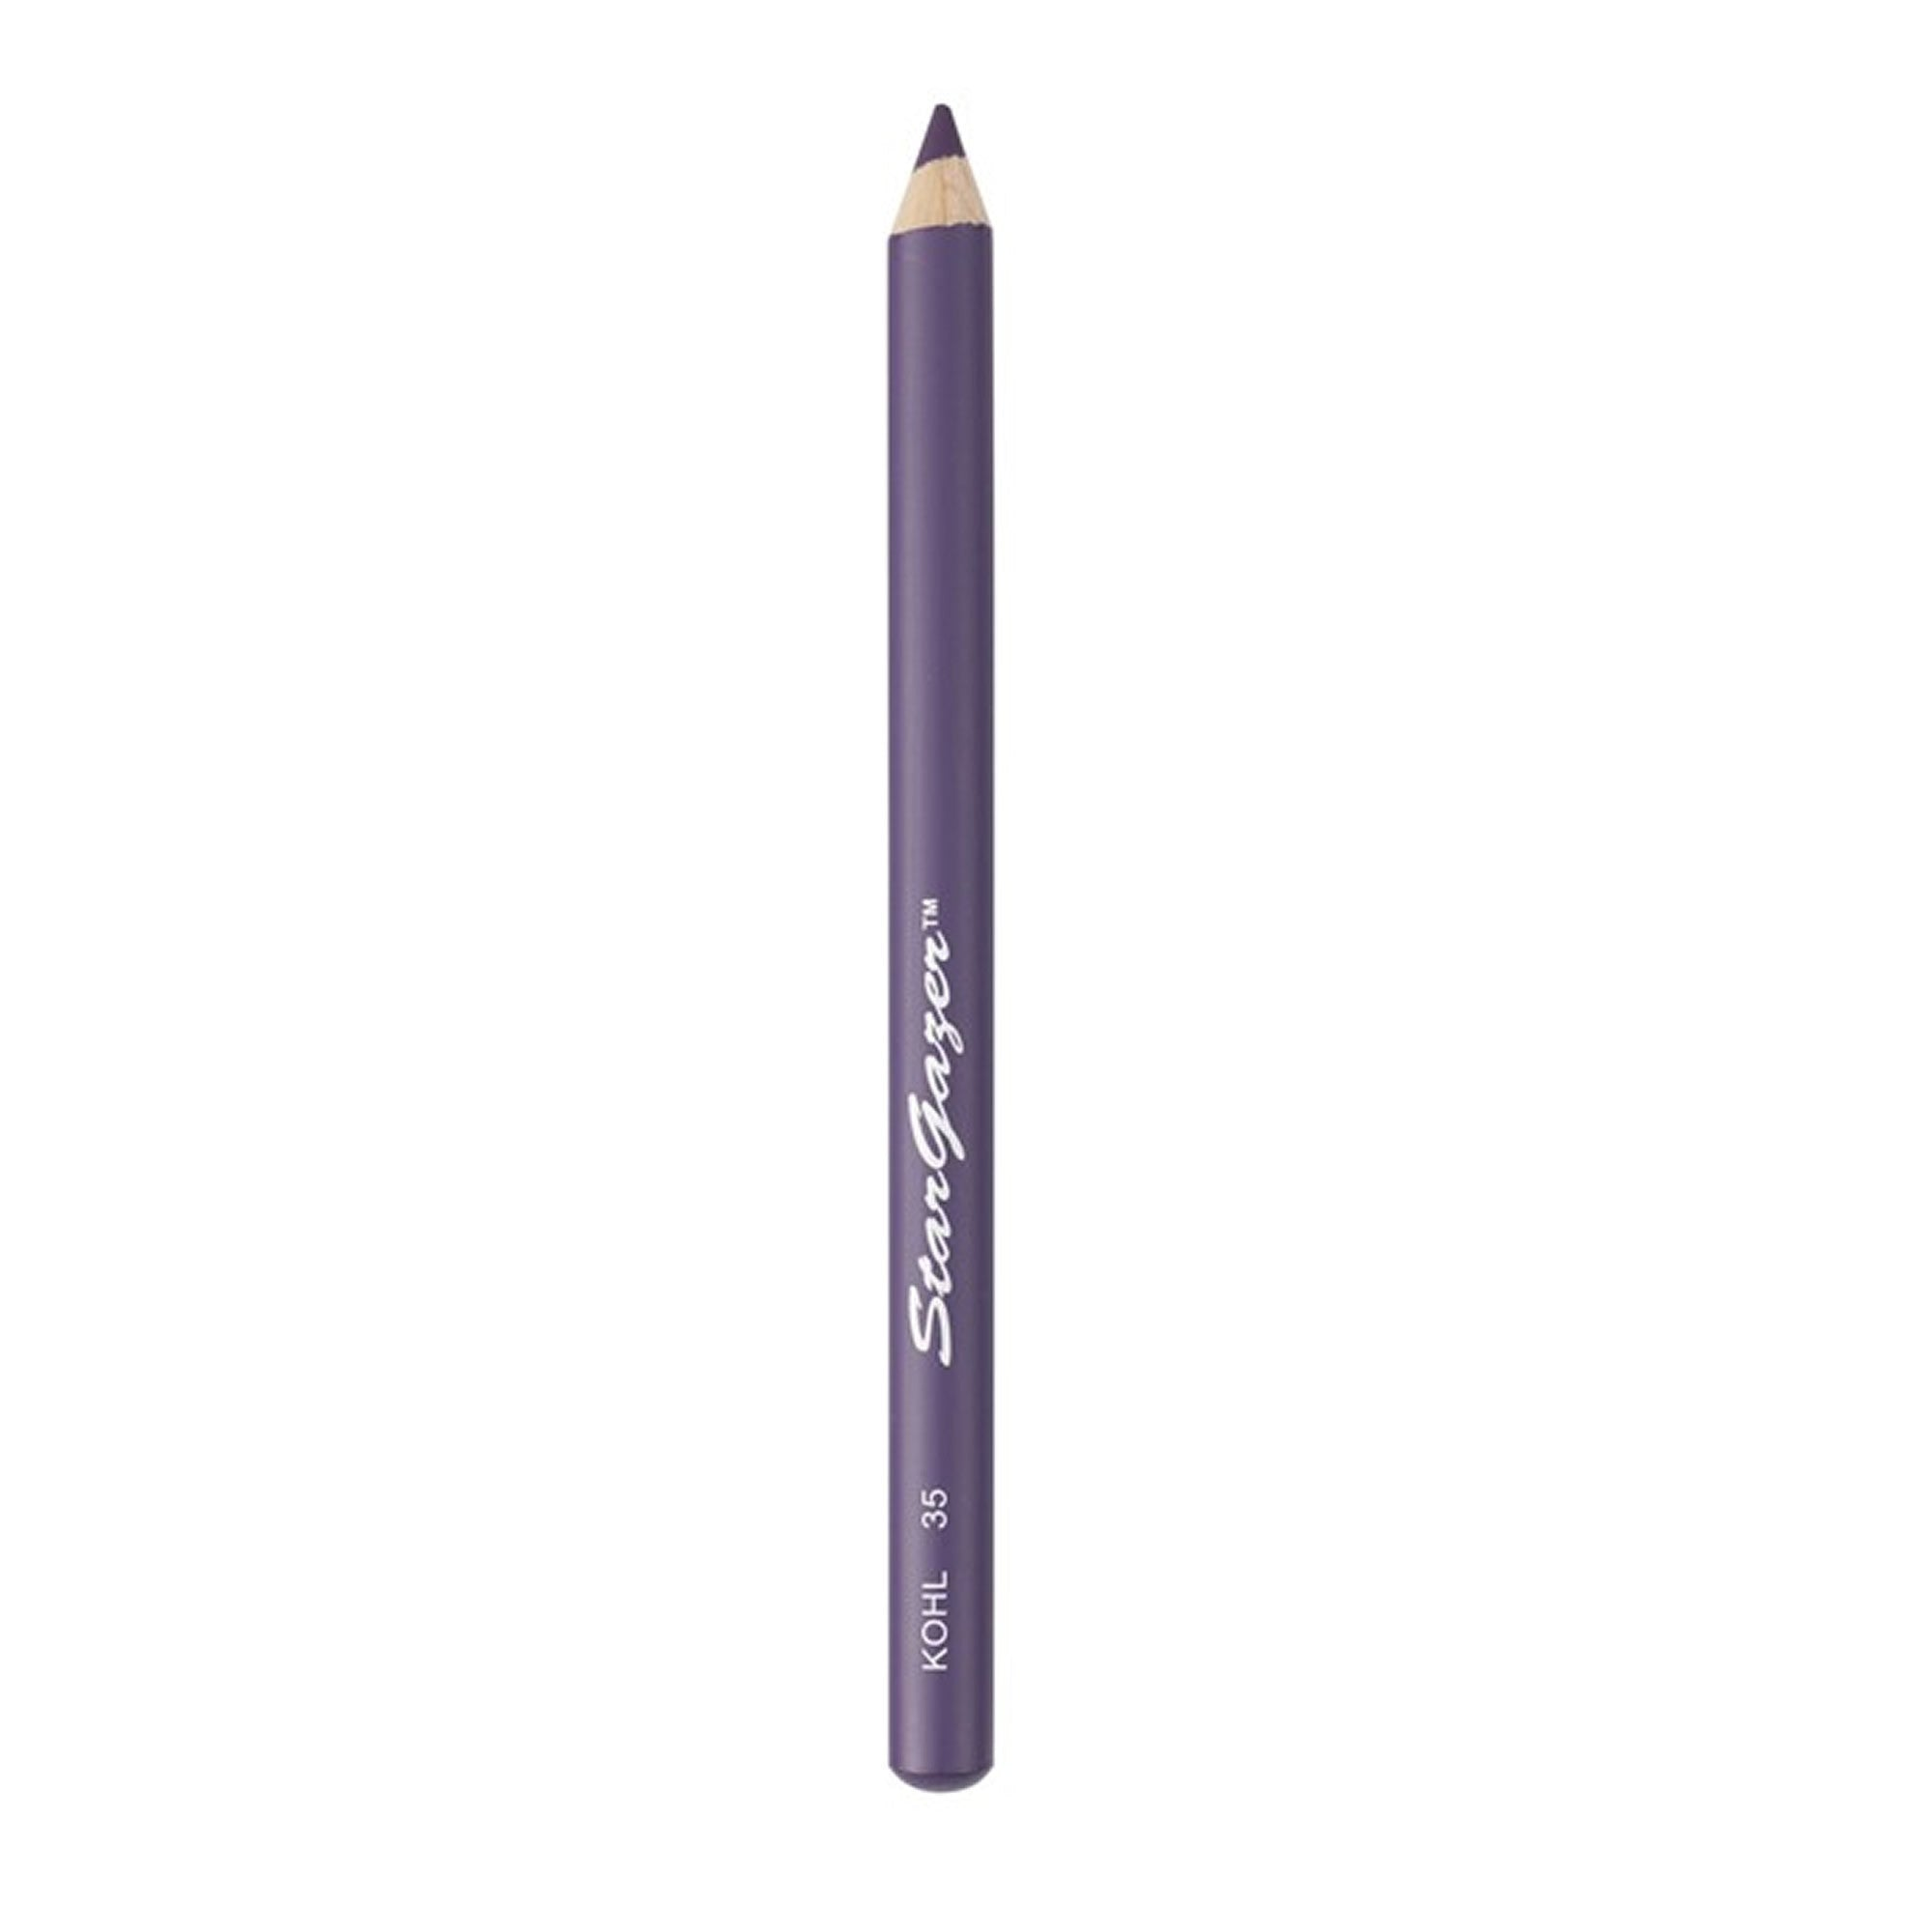 Stargazer Soft Eye Pencil - 35 - Red Carpet FX - Professional Makeup